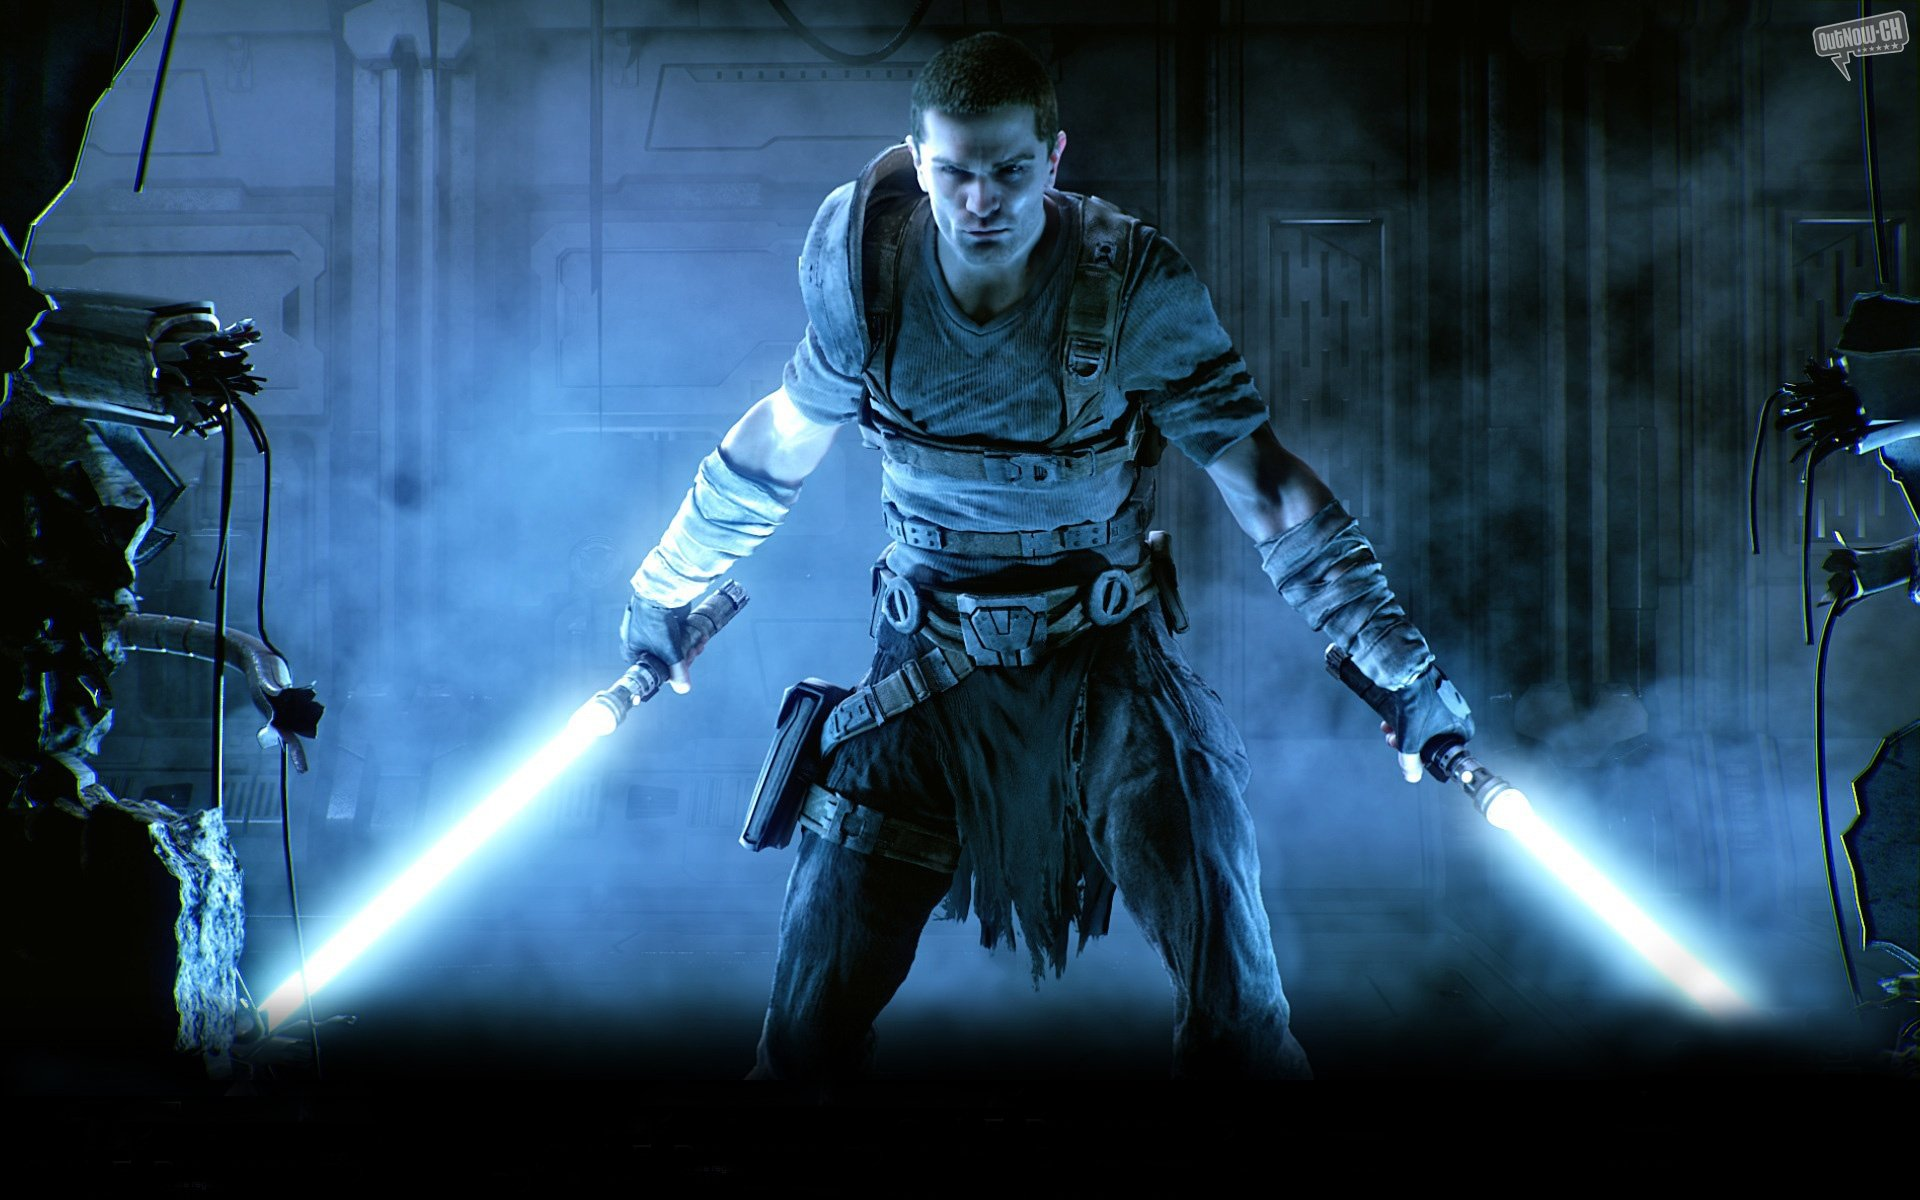 Sith Wallpaper Hd Star Wars The Force Unleashed Ii Full Hd Wallpaper And